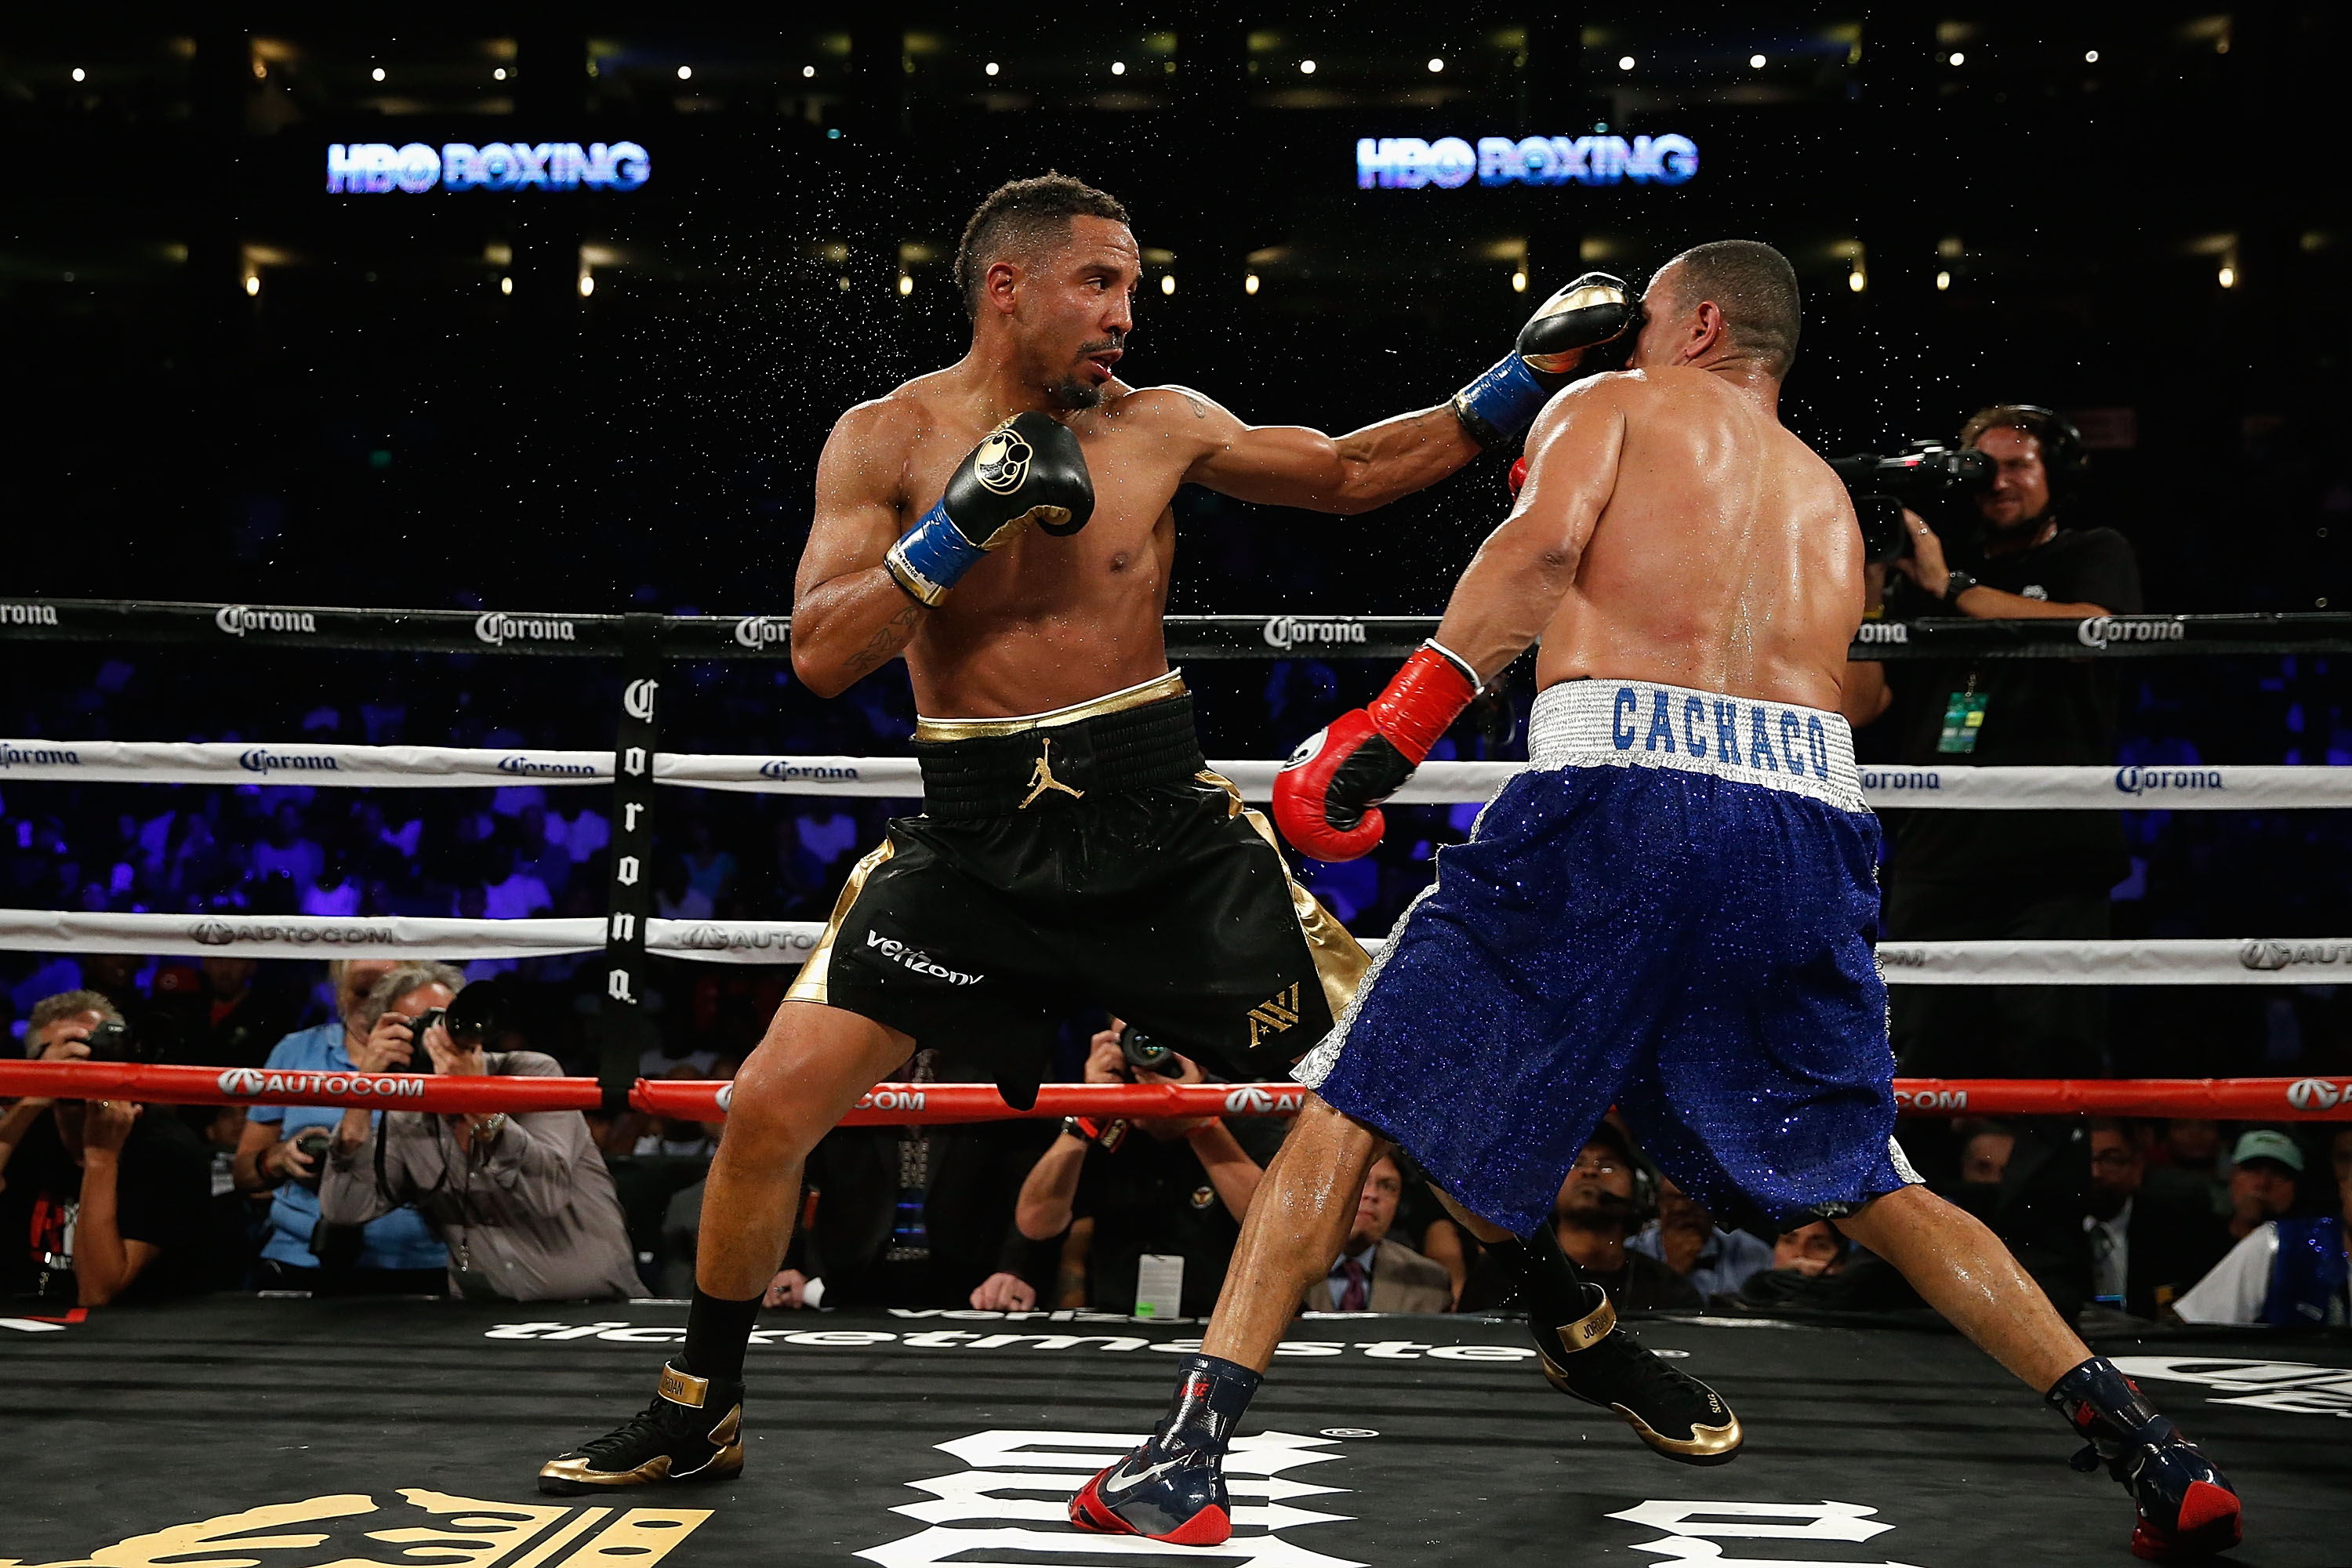 Andre Ward (left) fights against Alexander Brand in their WBO Intercontinental Light Heavyweight Title bout at ORACLE Arena on August 6, 2016 in Oakland, California.